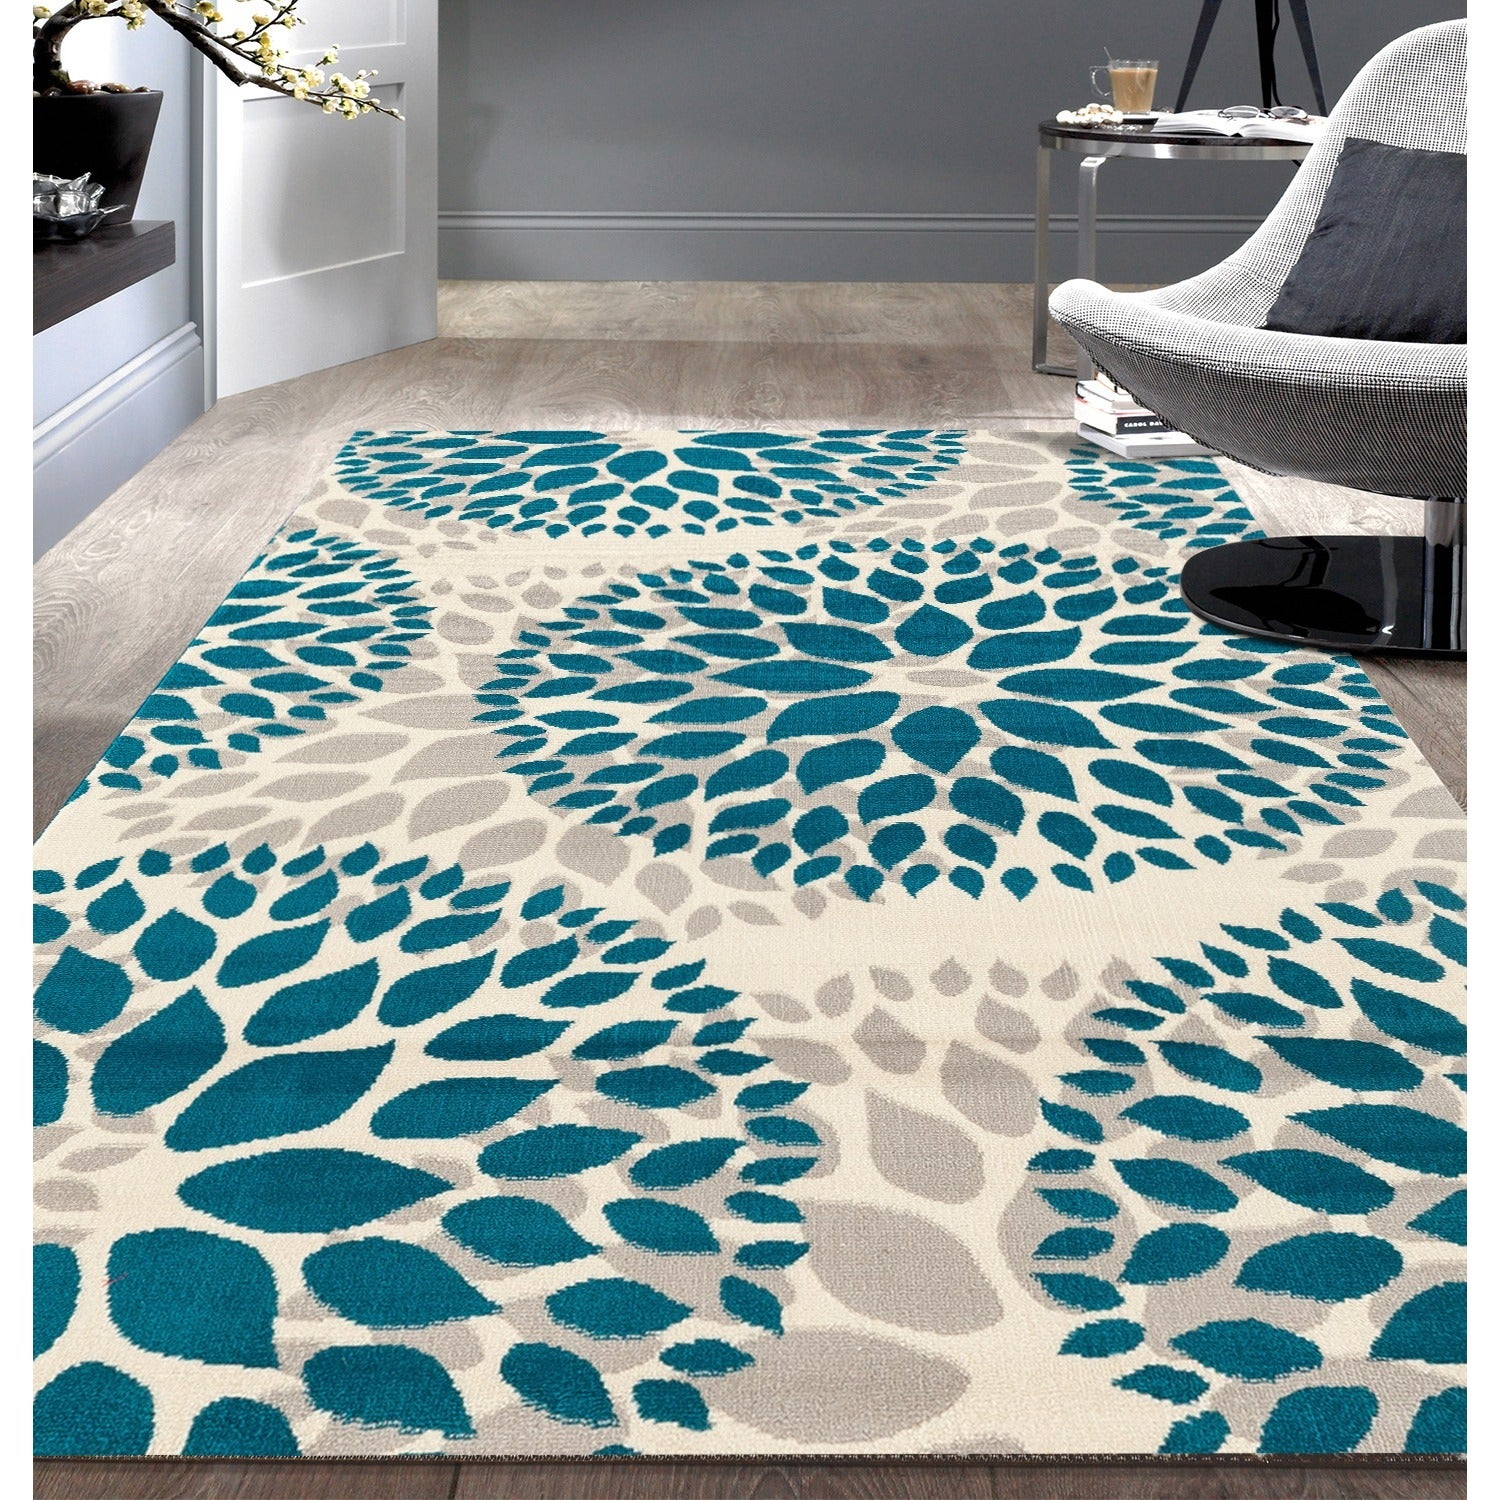 marvelous stunning plush teal carpets dining and under cheap floor area floral green room purple living tan shag target dark accent discount round sizes light rugs rug